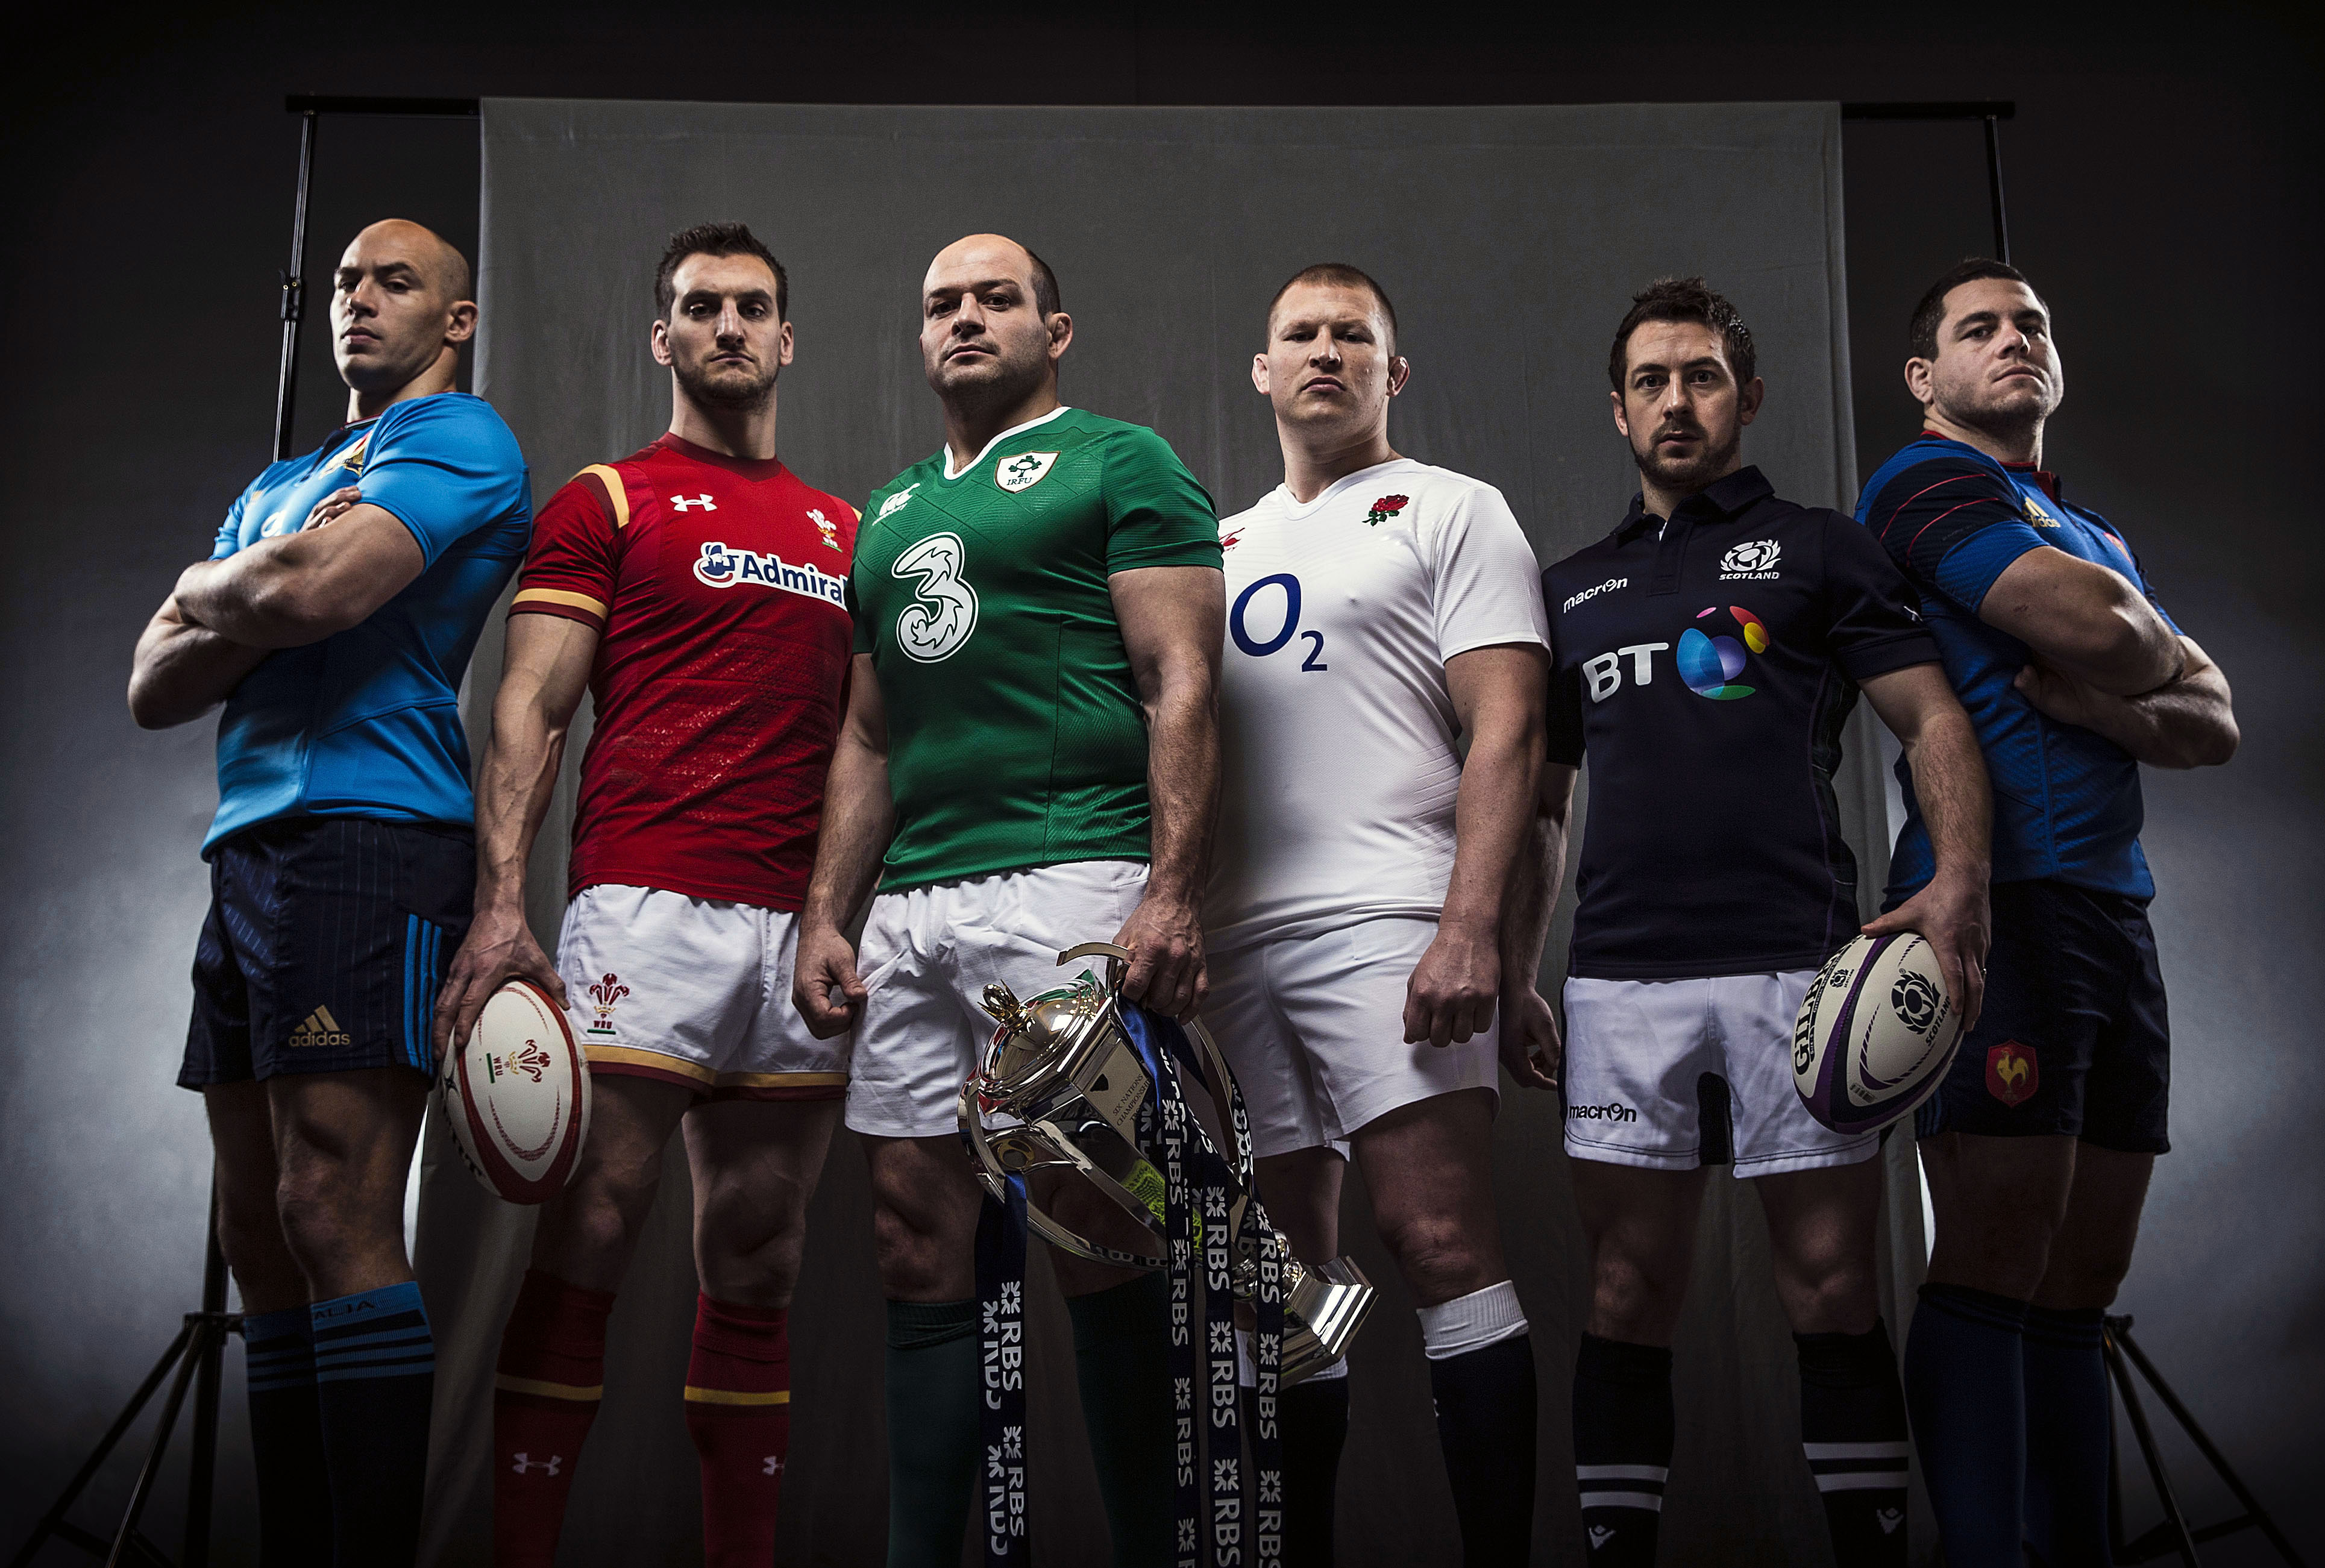 2016 RBS 6 Nations launches in style